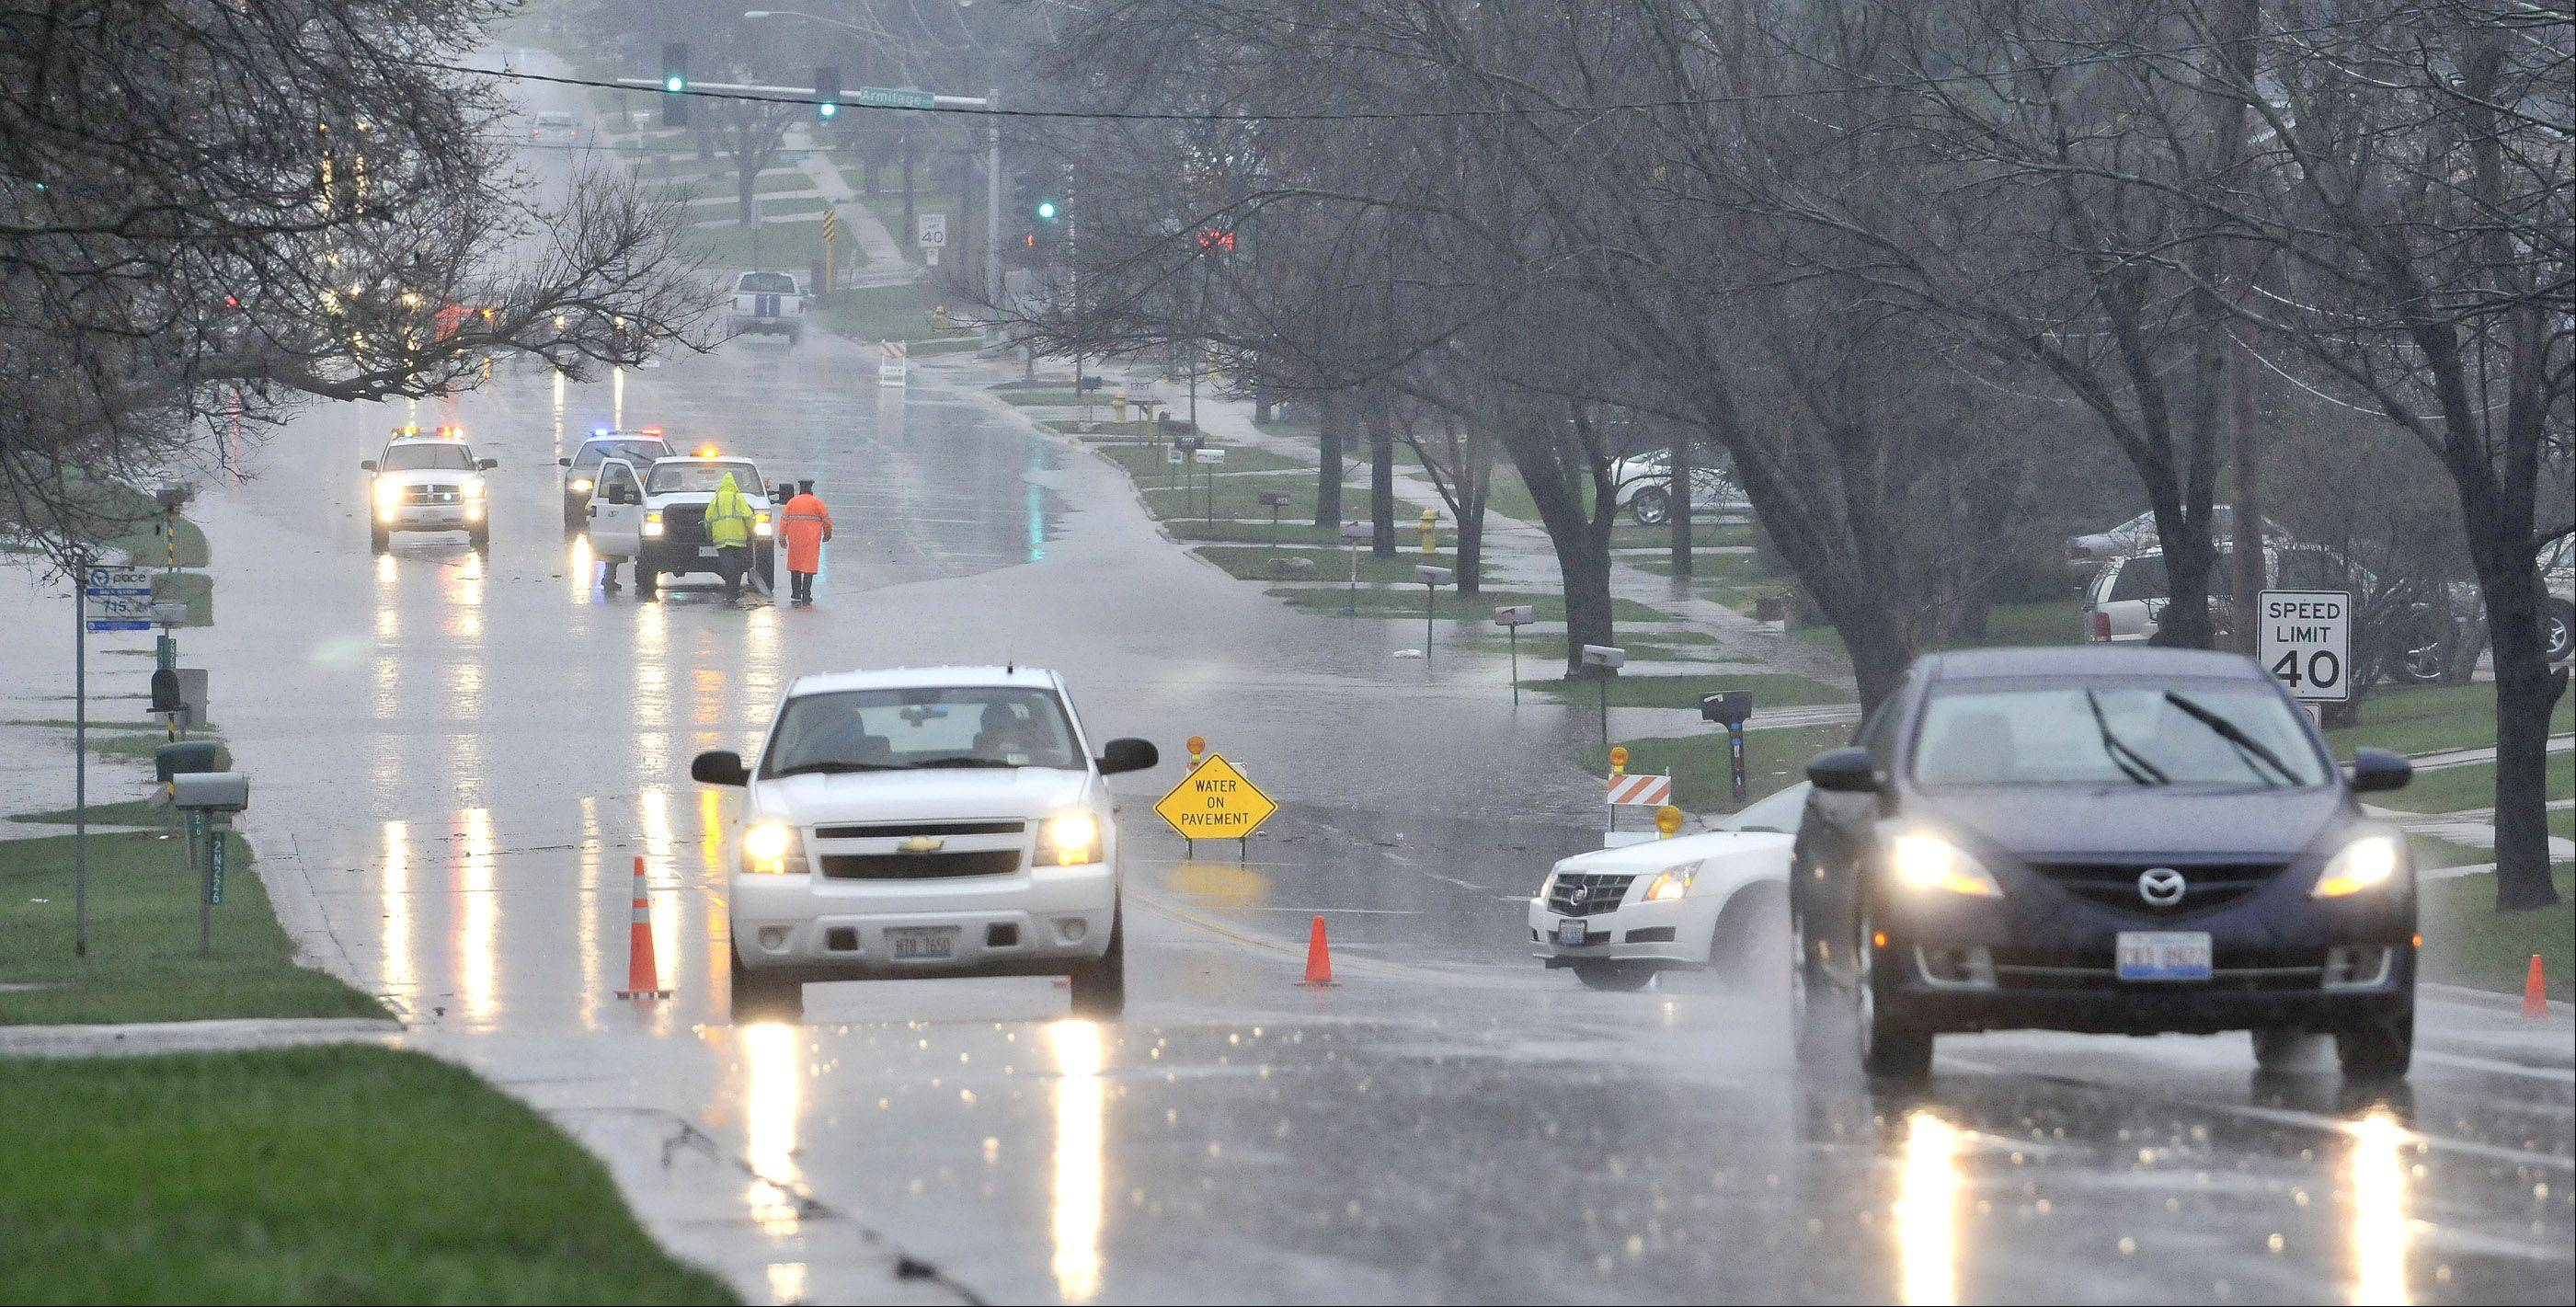 Glen Ellyn Rd, north of North Avenue in Glendale Heights was closed. Heavy rains overnight resulted in heavy flooding in the DuPage County area.